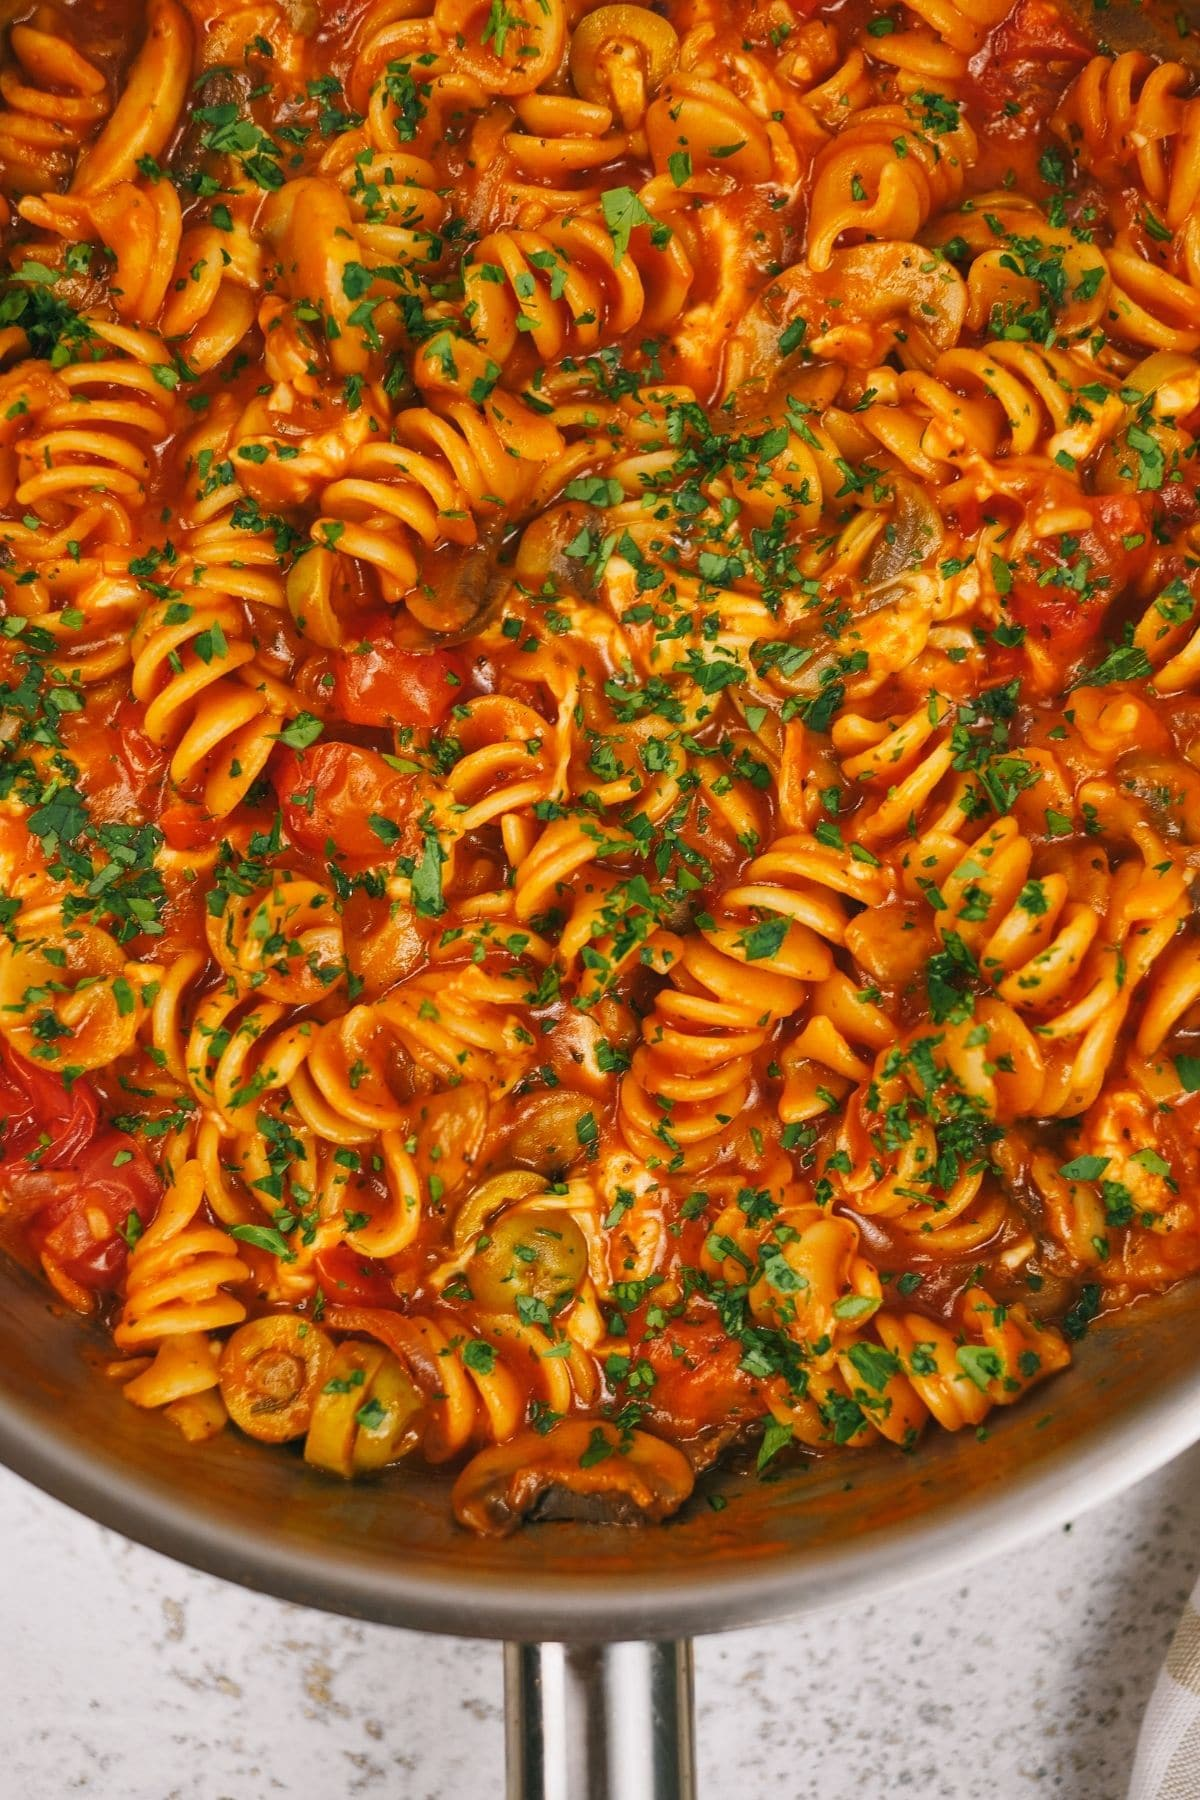 Skillet filled with pasta in tomato sauce